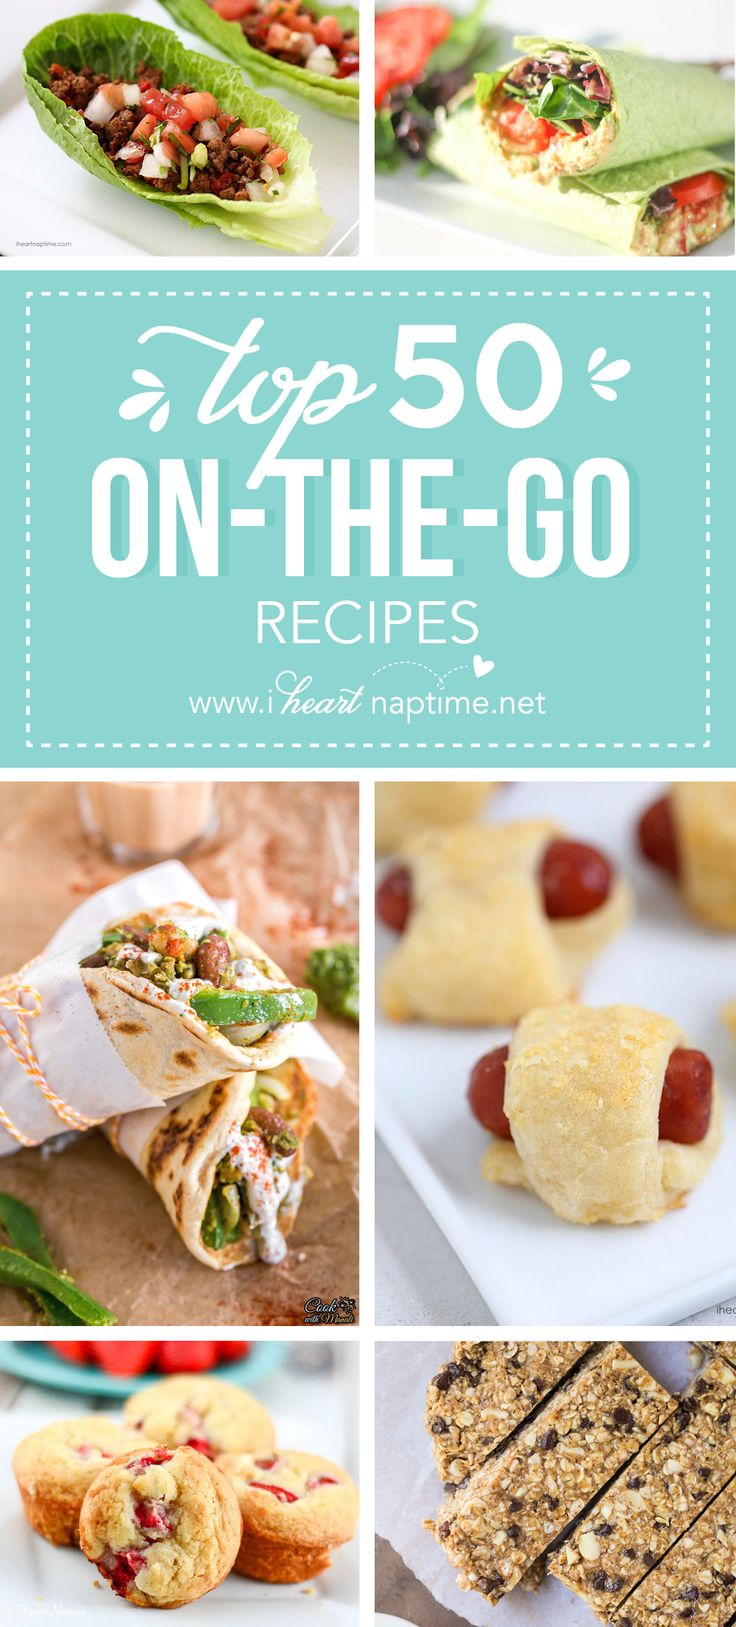 Top 50 On the Go Recipes - the best guide to wonderful recipes that are quick to prepare and perfect for a day full of kids' activities, road trips, a family picnic, or any busy day!